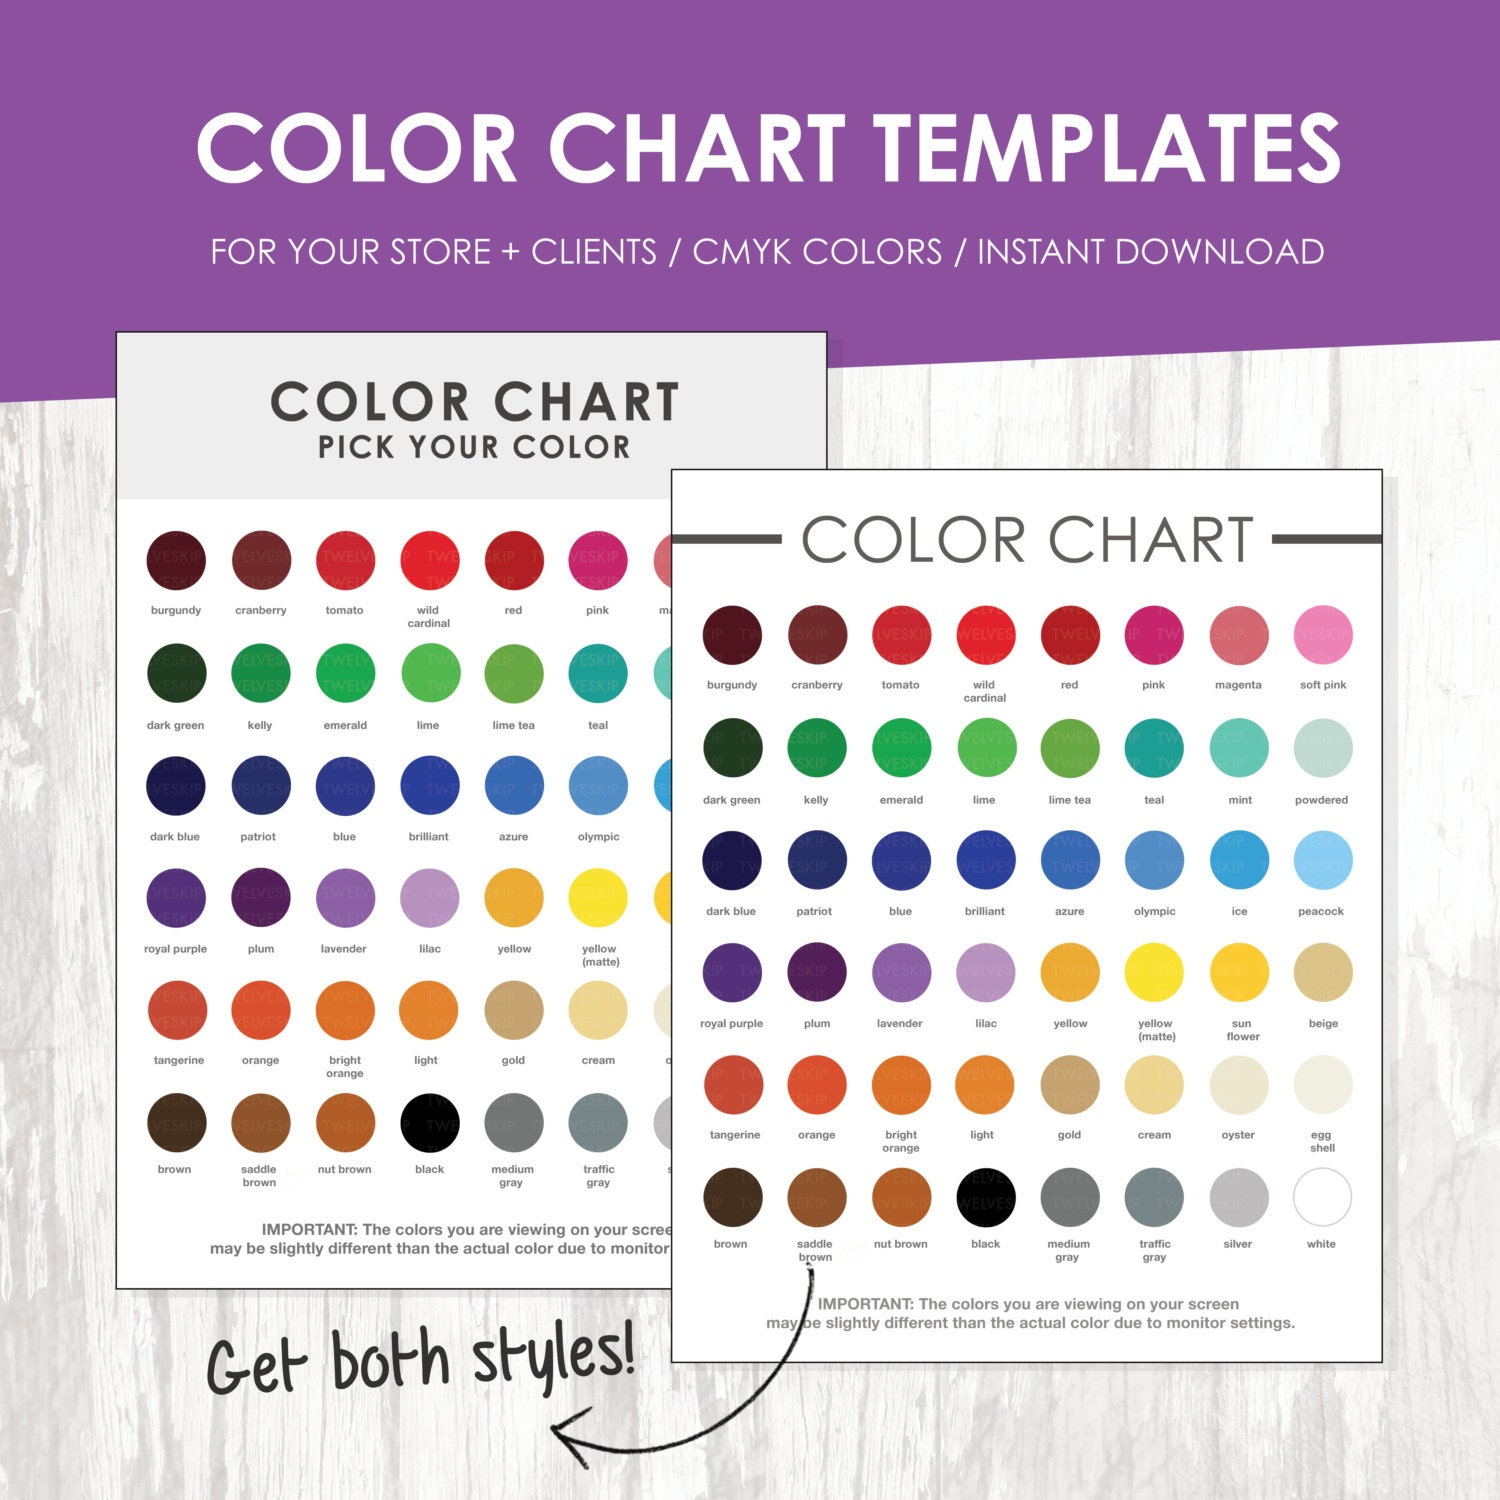 Color chart color chart template color palette instant zoom nvjuhfo Gallery